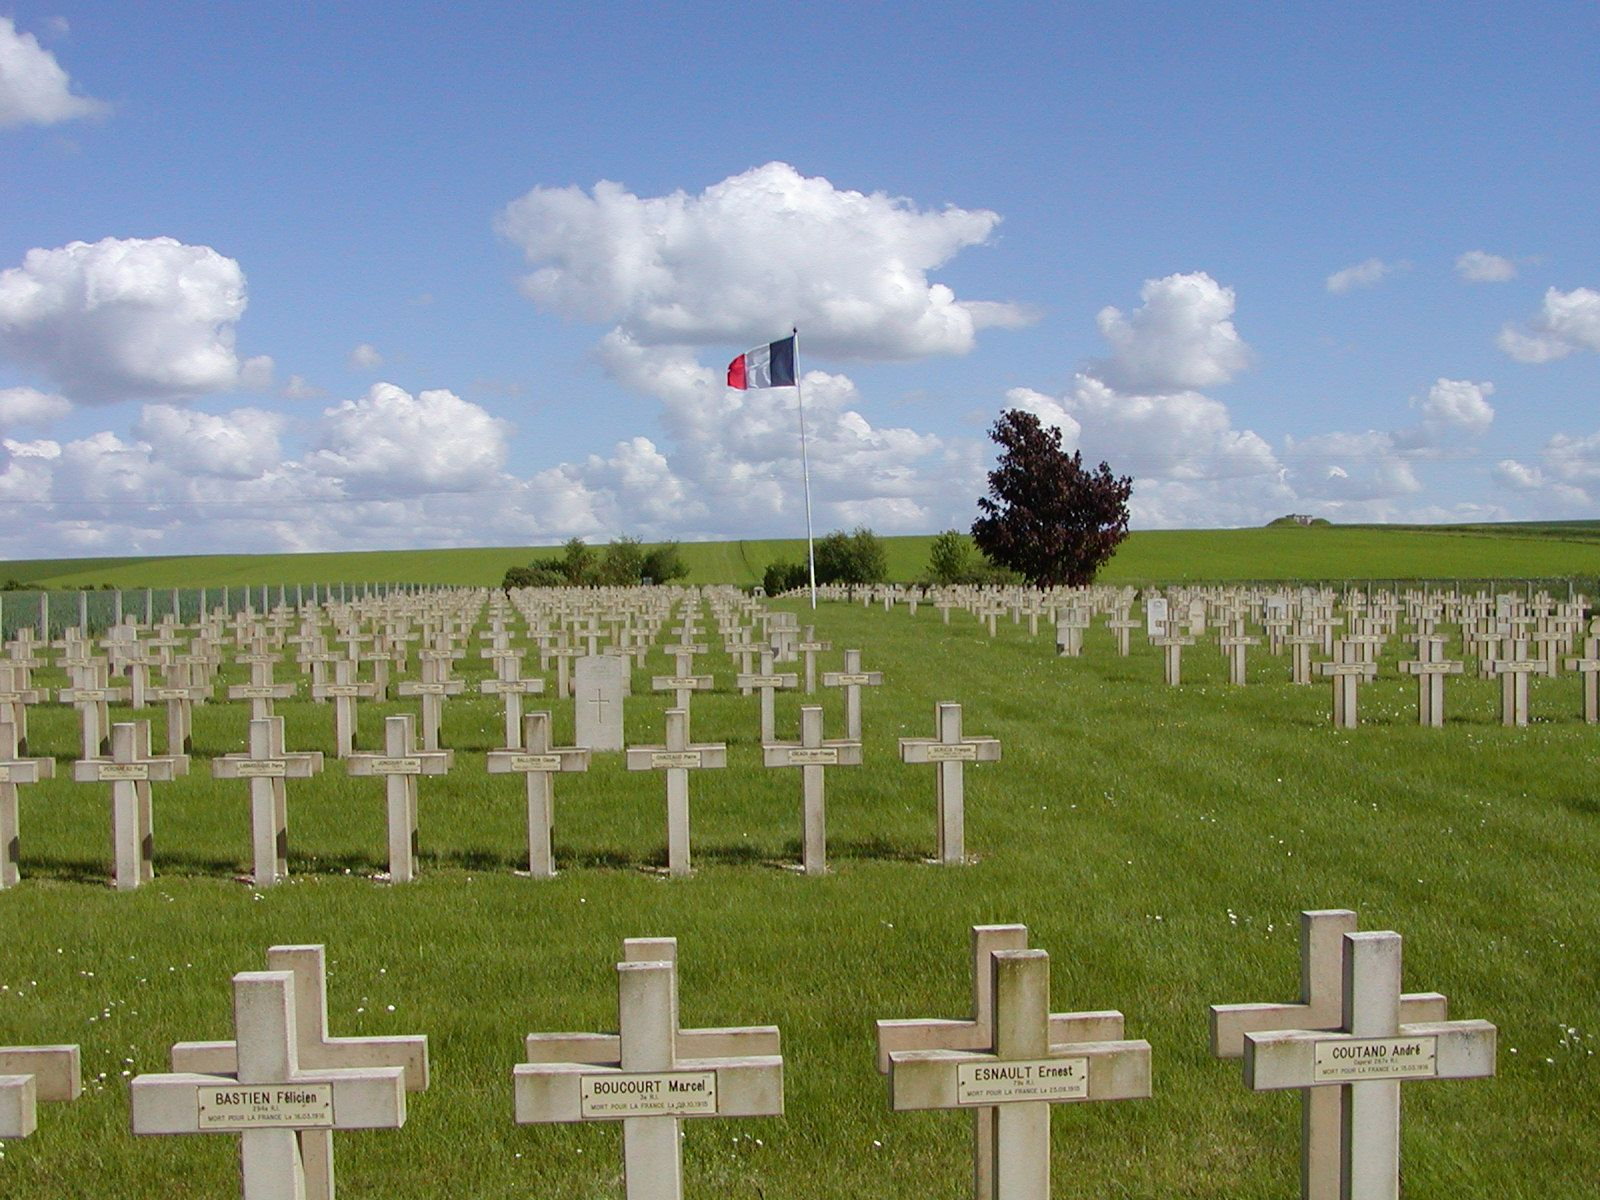 In A Small Back Area Of North Eastern France We Found This Small Cemetery Commemorating The Fallen French Soldiers Of Wwi Photo By J Wwi Commemoration Soldier